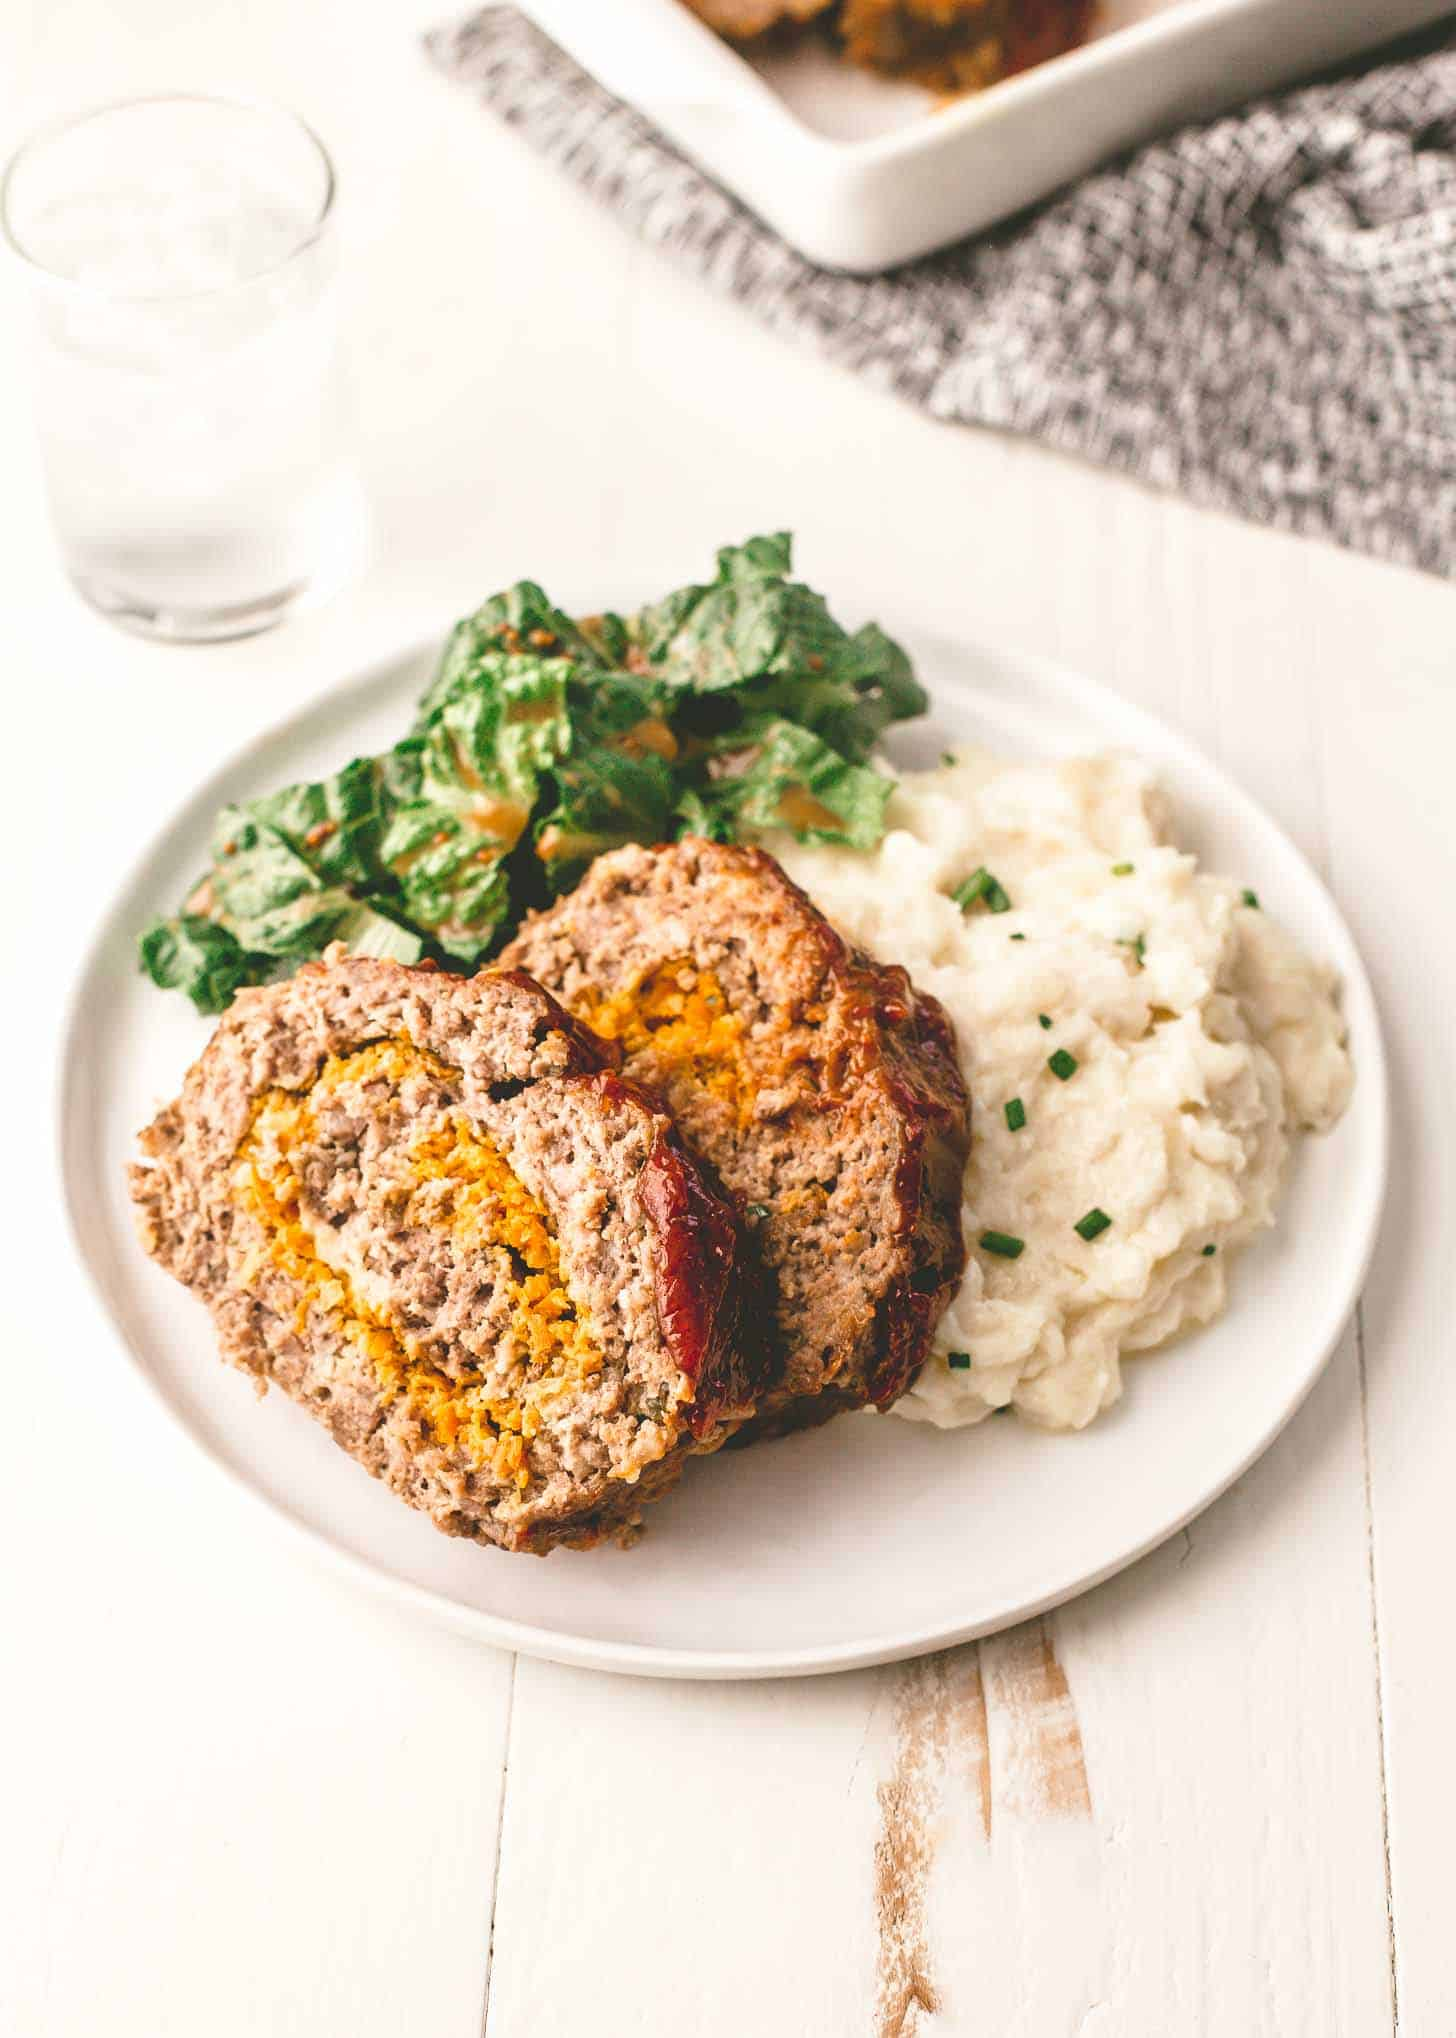 Classic Meatloaf on a white plate with mashed potatoes